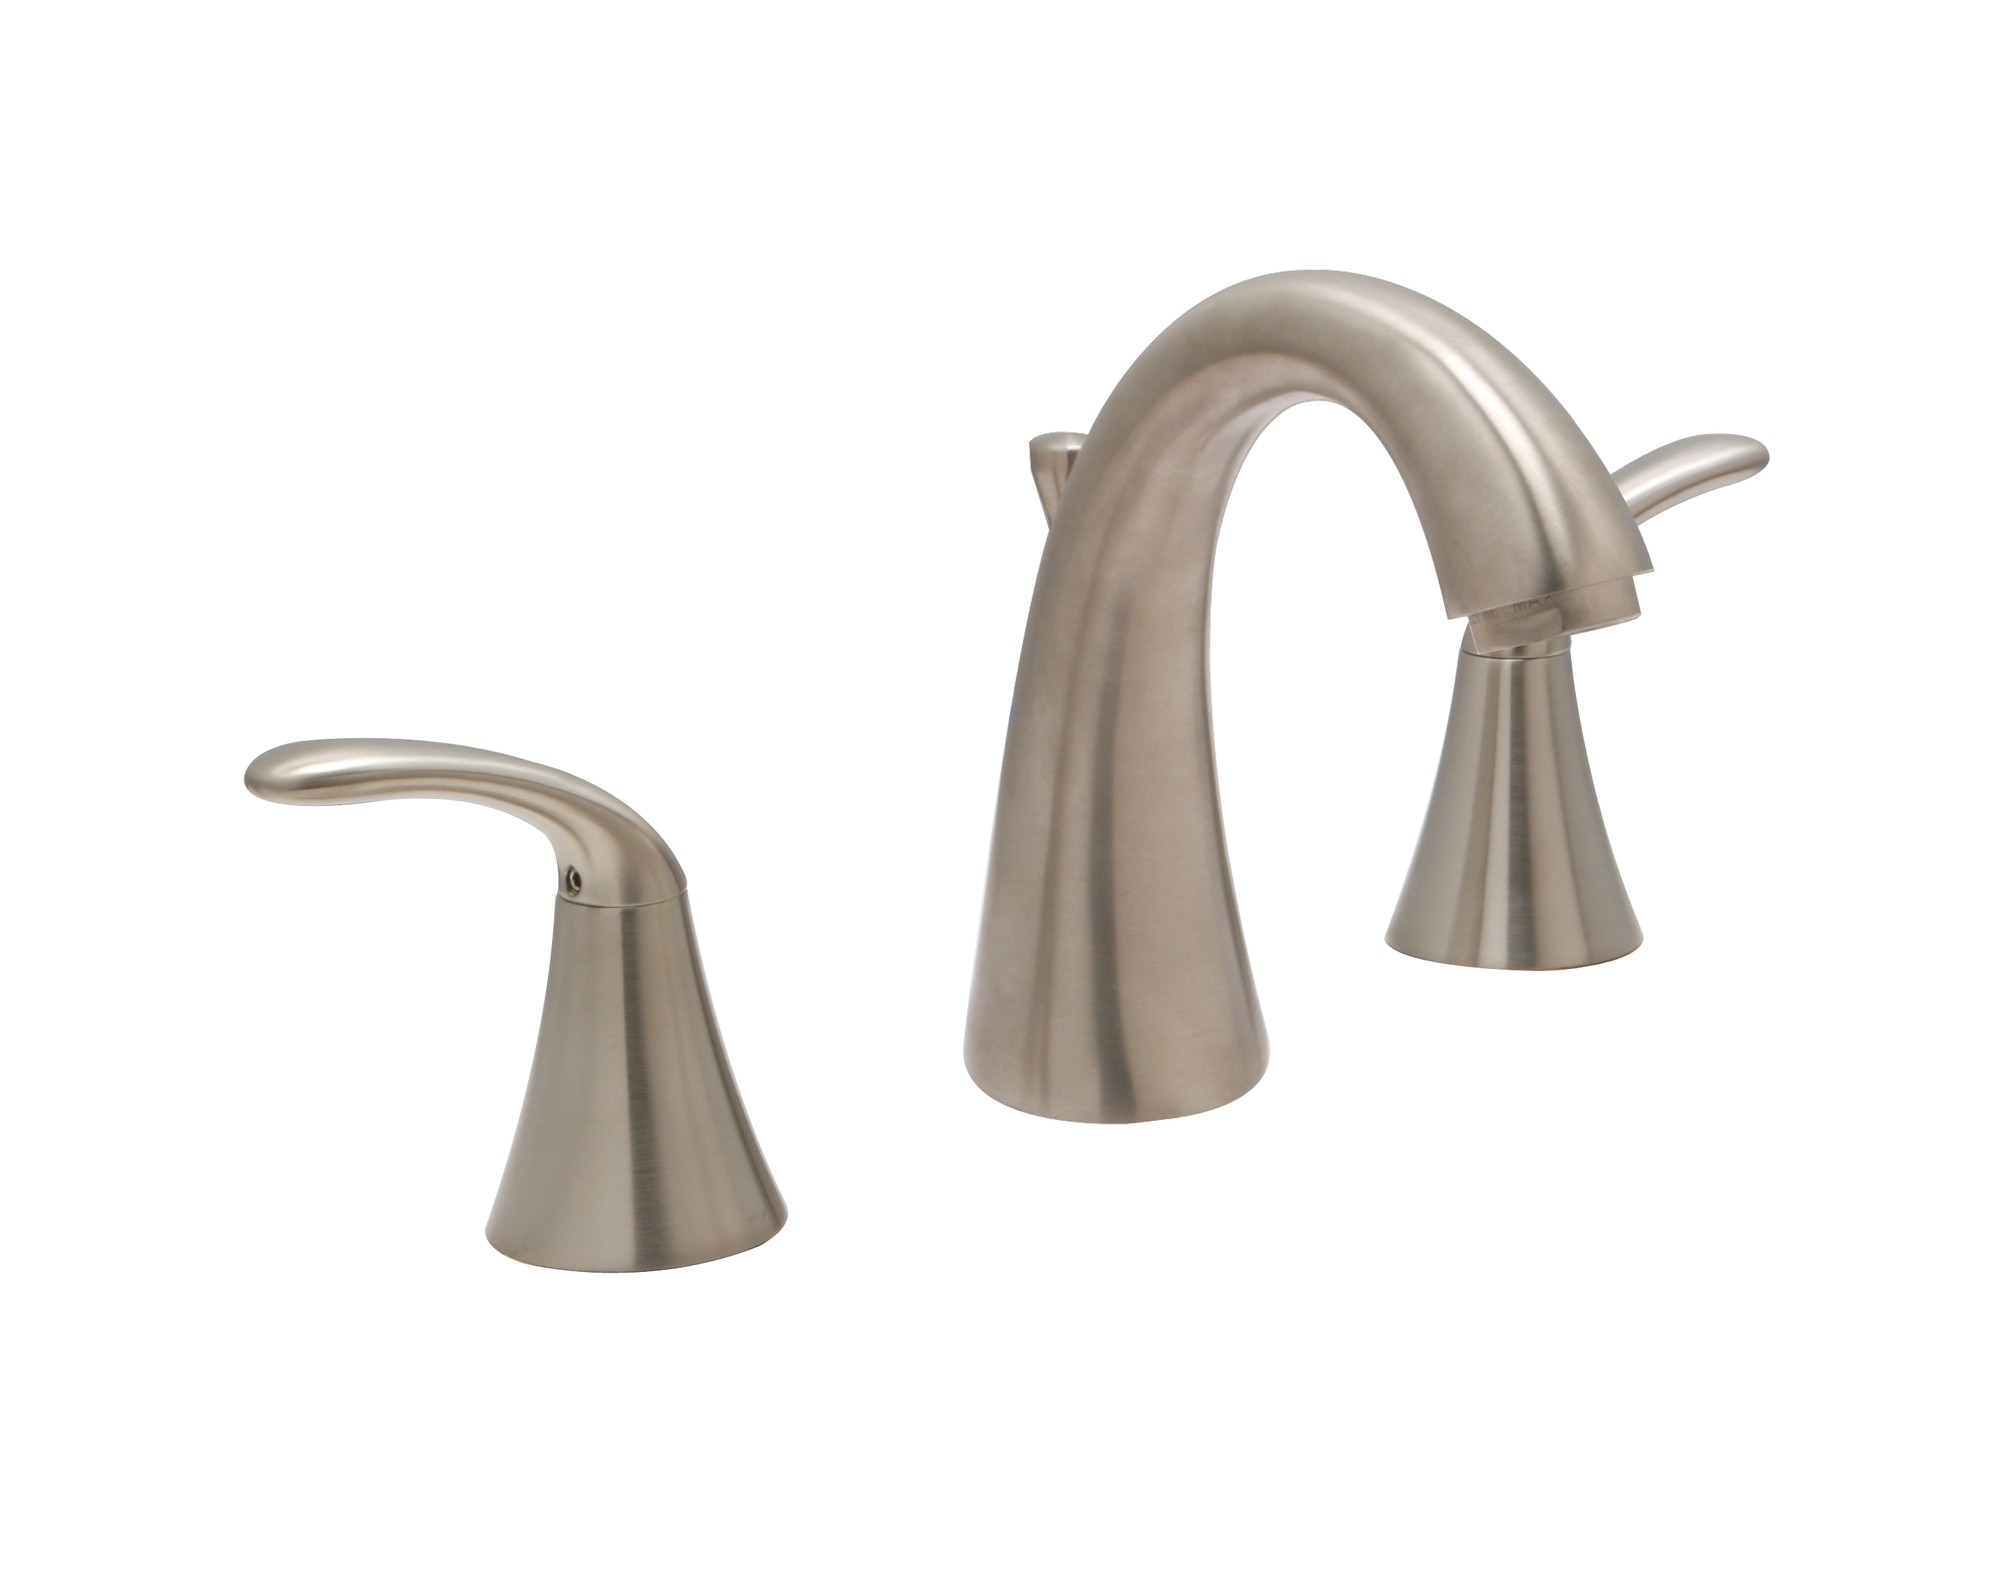 Trend Widespread Faucet W4520002-1